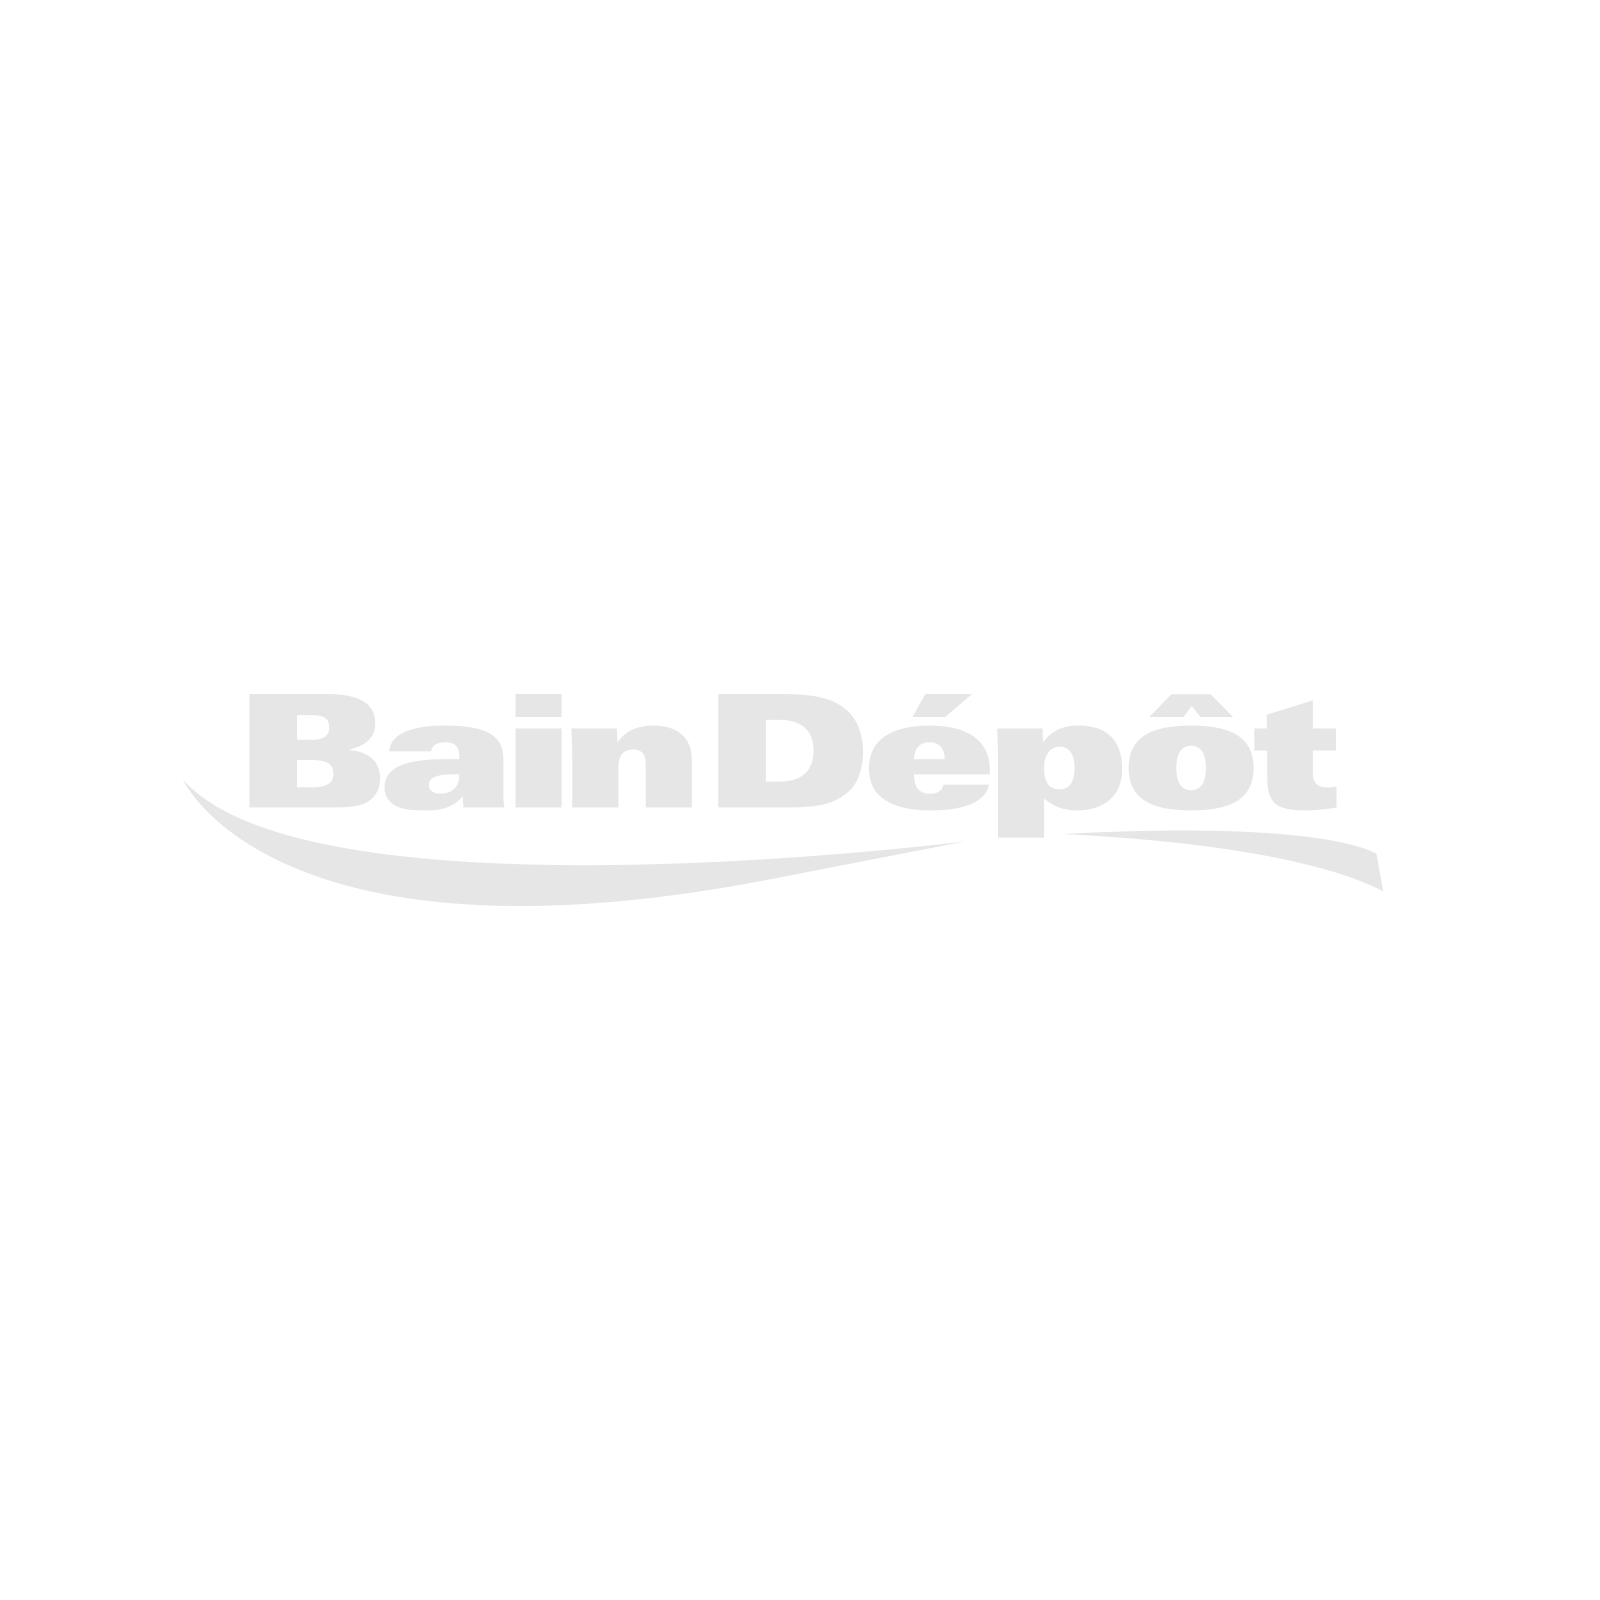 Sleek 4-piece bathroom hardware kit